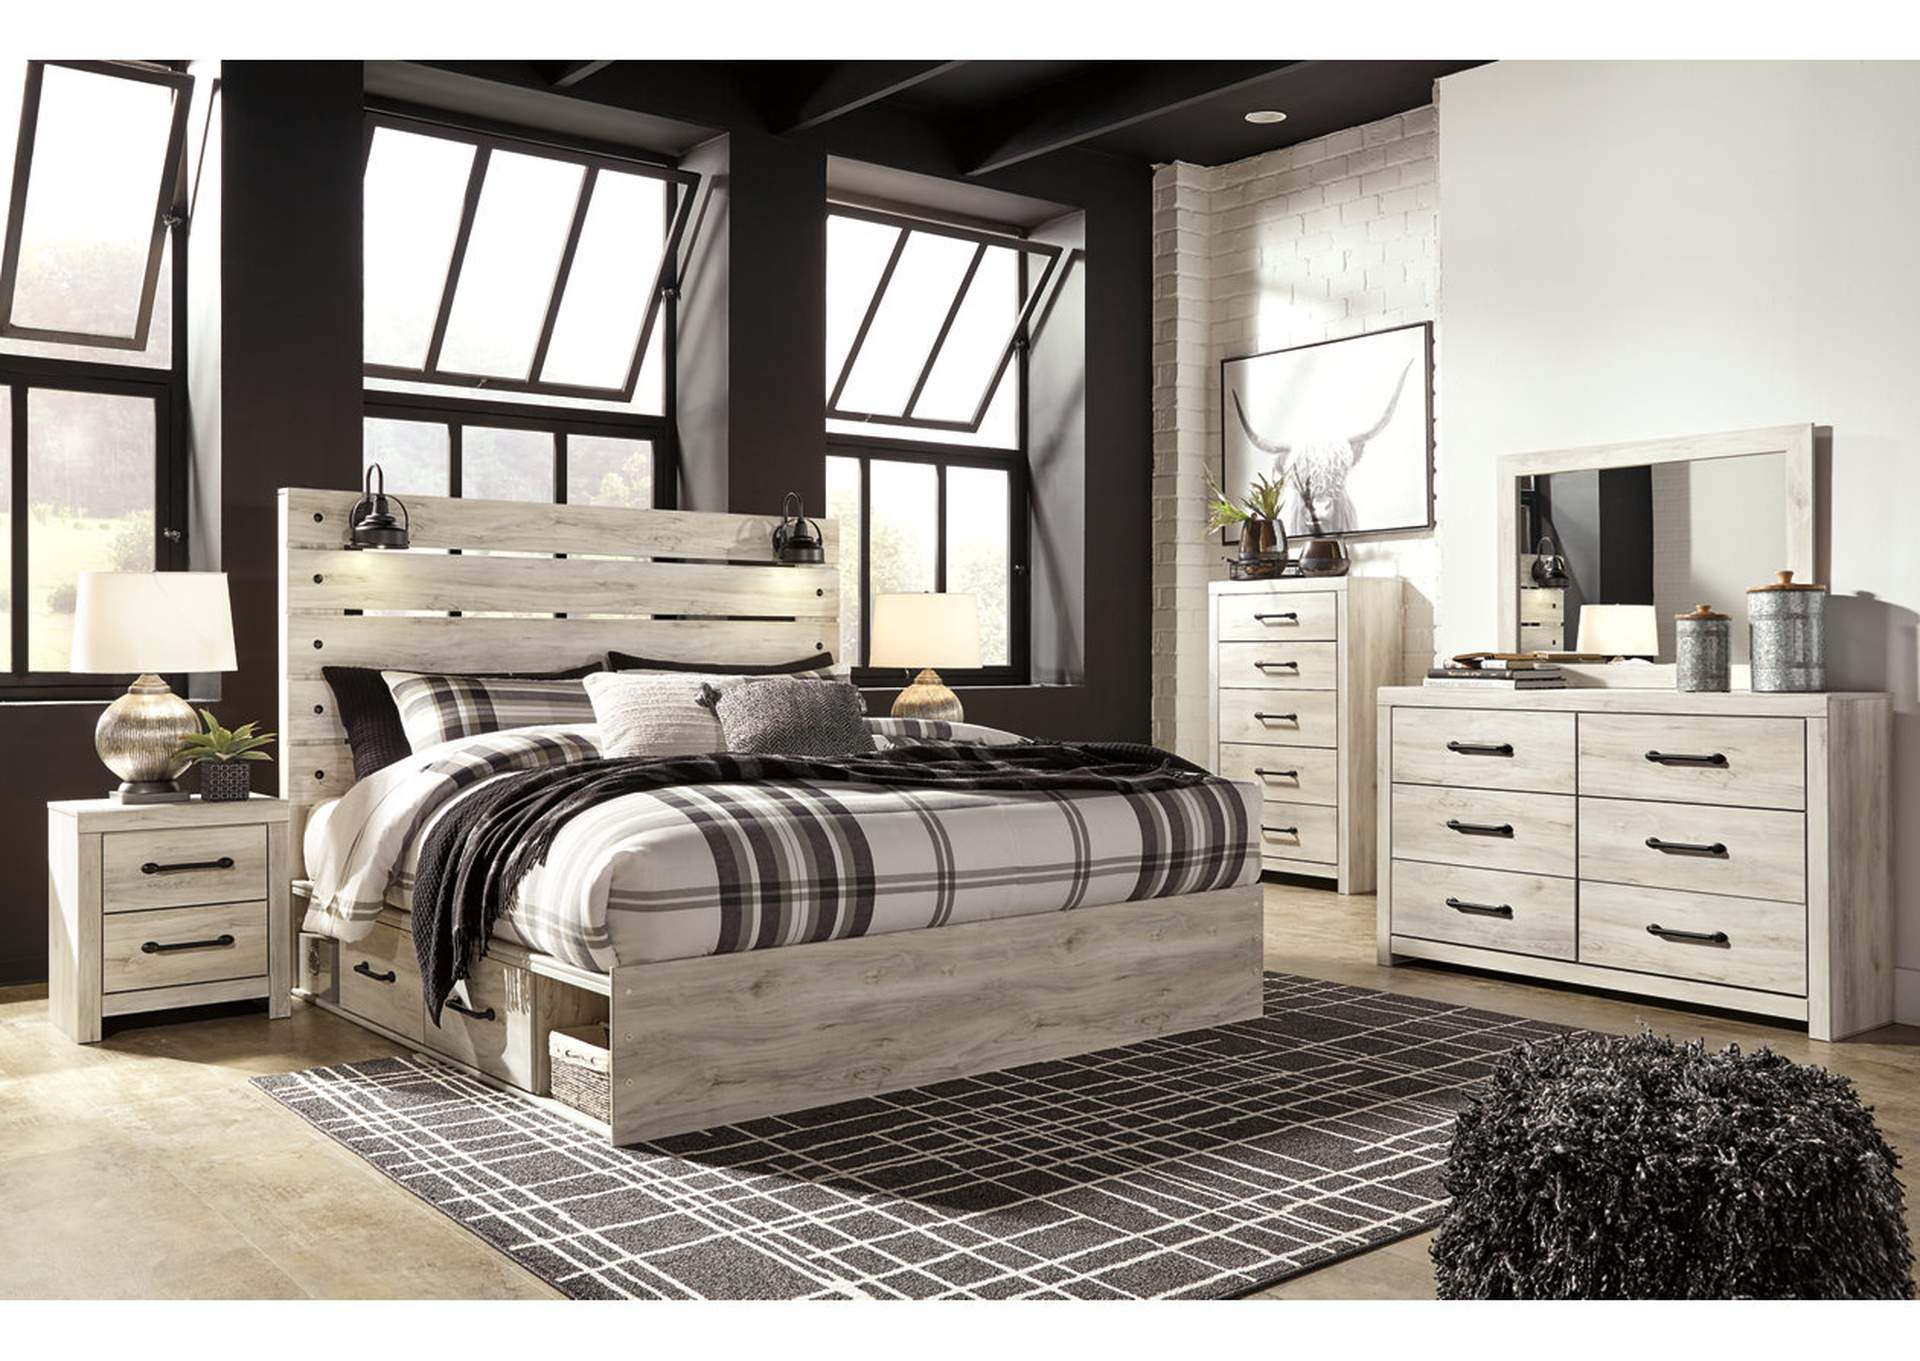 Cambeck King Panel Bed with 2 Storage Drawers, Dresser and Mirror,Signature Design By Ashley